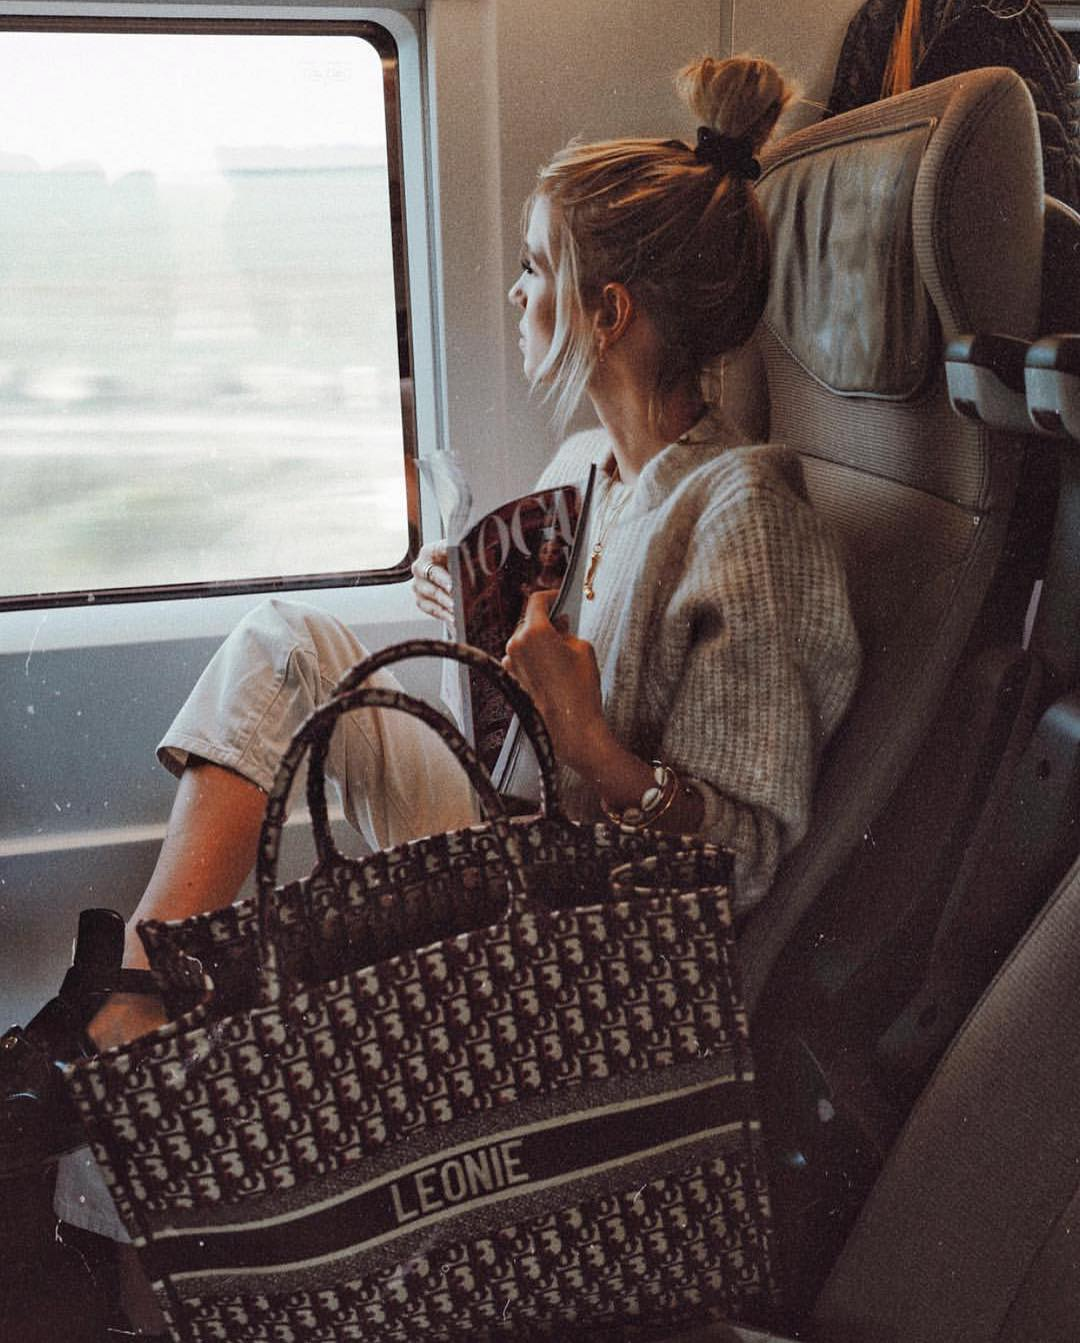 Oversized Sweater, Regular Jeans And Cut-Out Boots For Casual Travel 2020